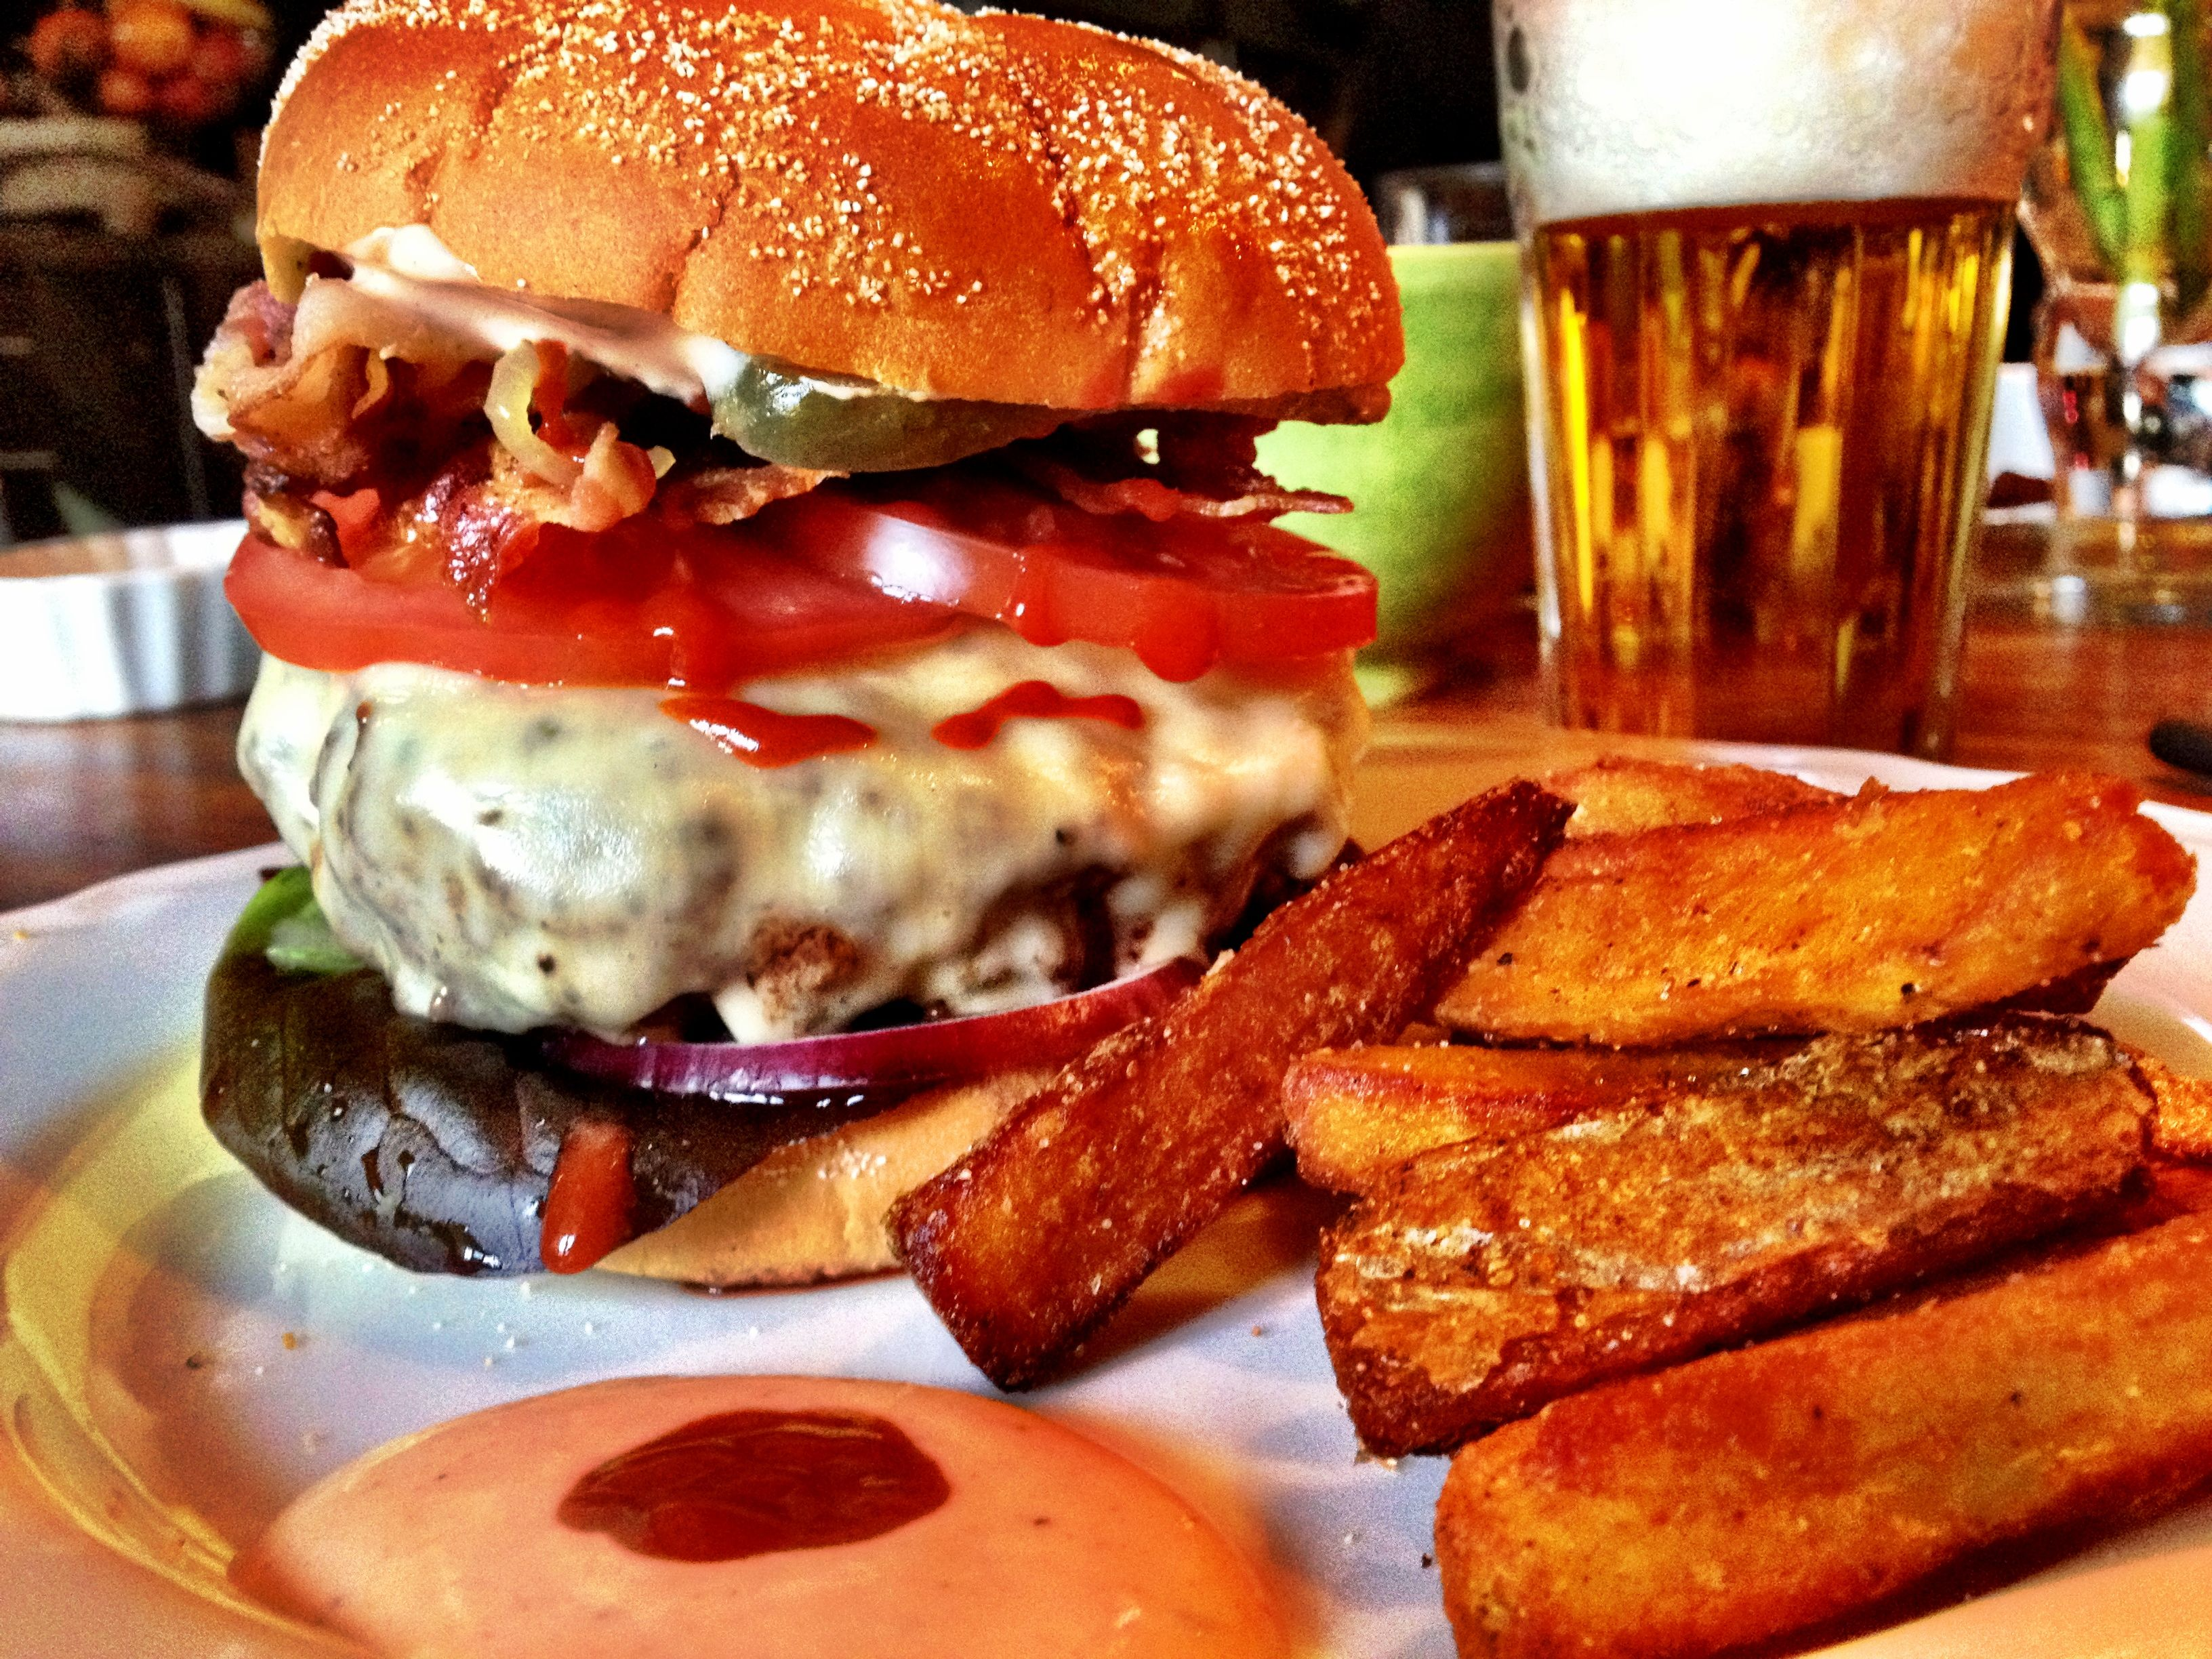 1/4 Kilogram Beef Burger with Fried Onion, Bacon, Melted Cheese, Sriracha Mayo, completed with Large Potato Wedges and a Cold Zlatopramen.